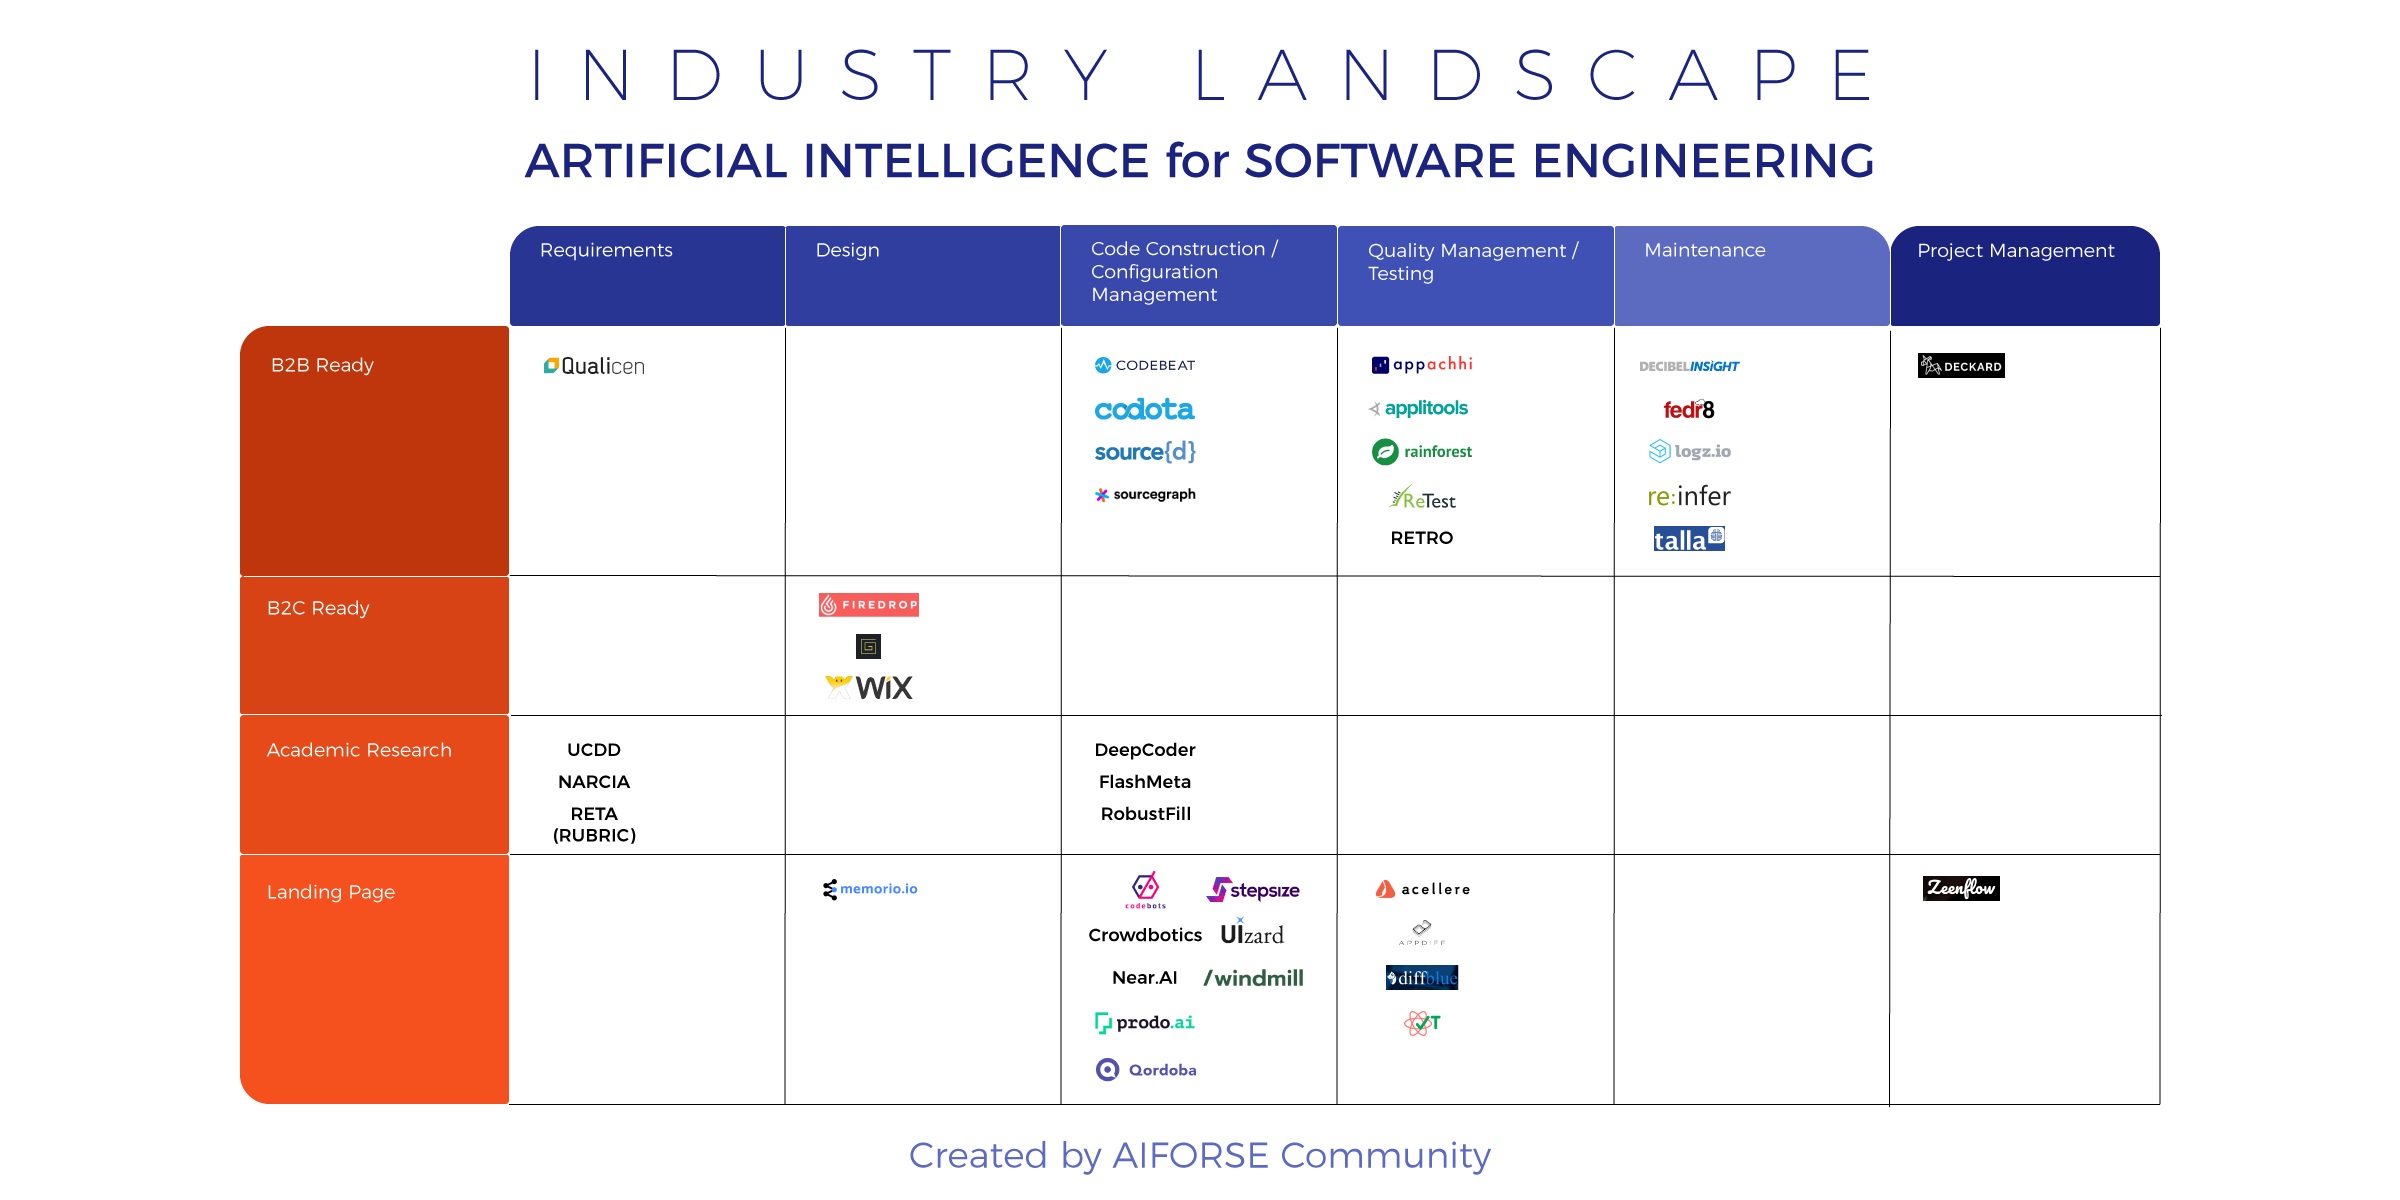 AI for Software Engineering — Industry Landscape (18/Oct/2017)